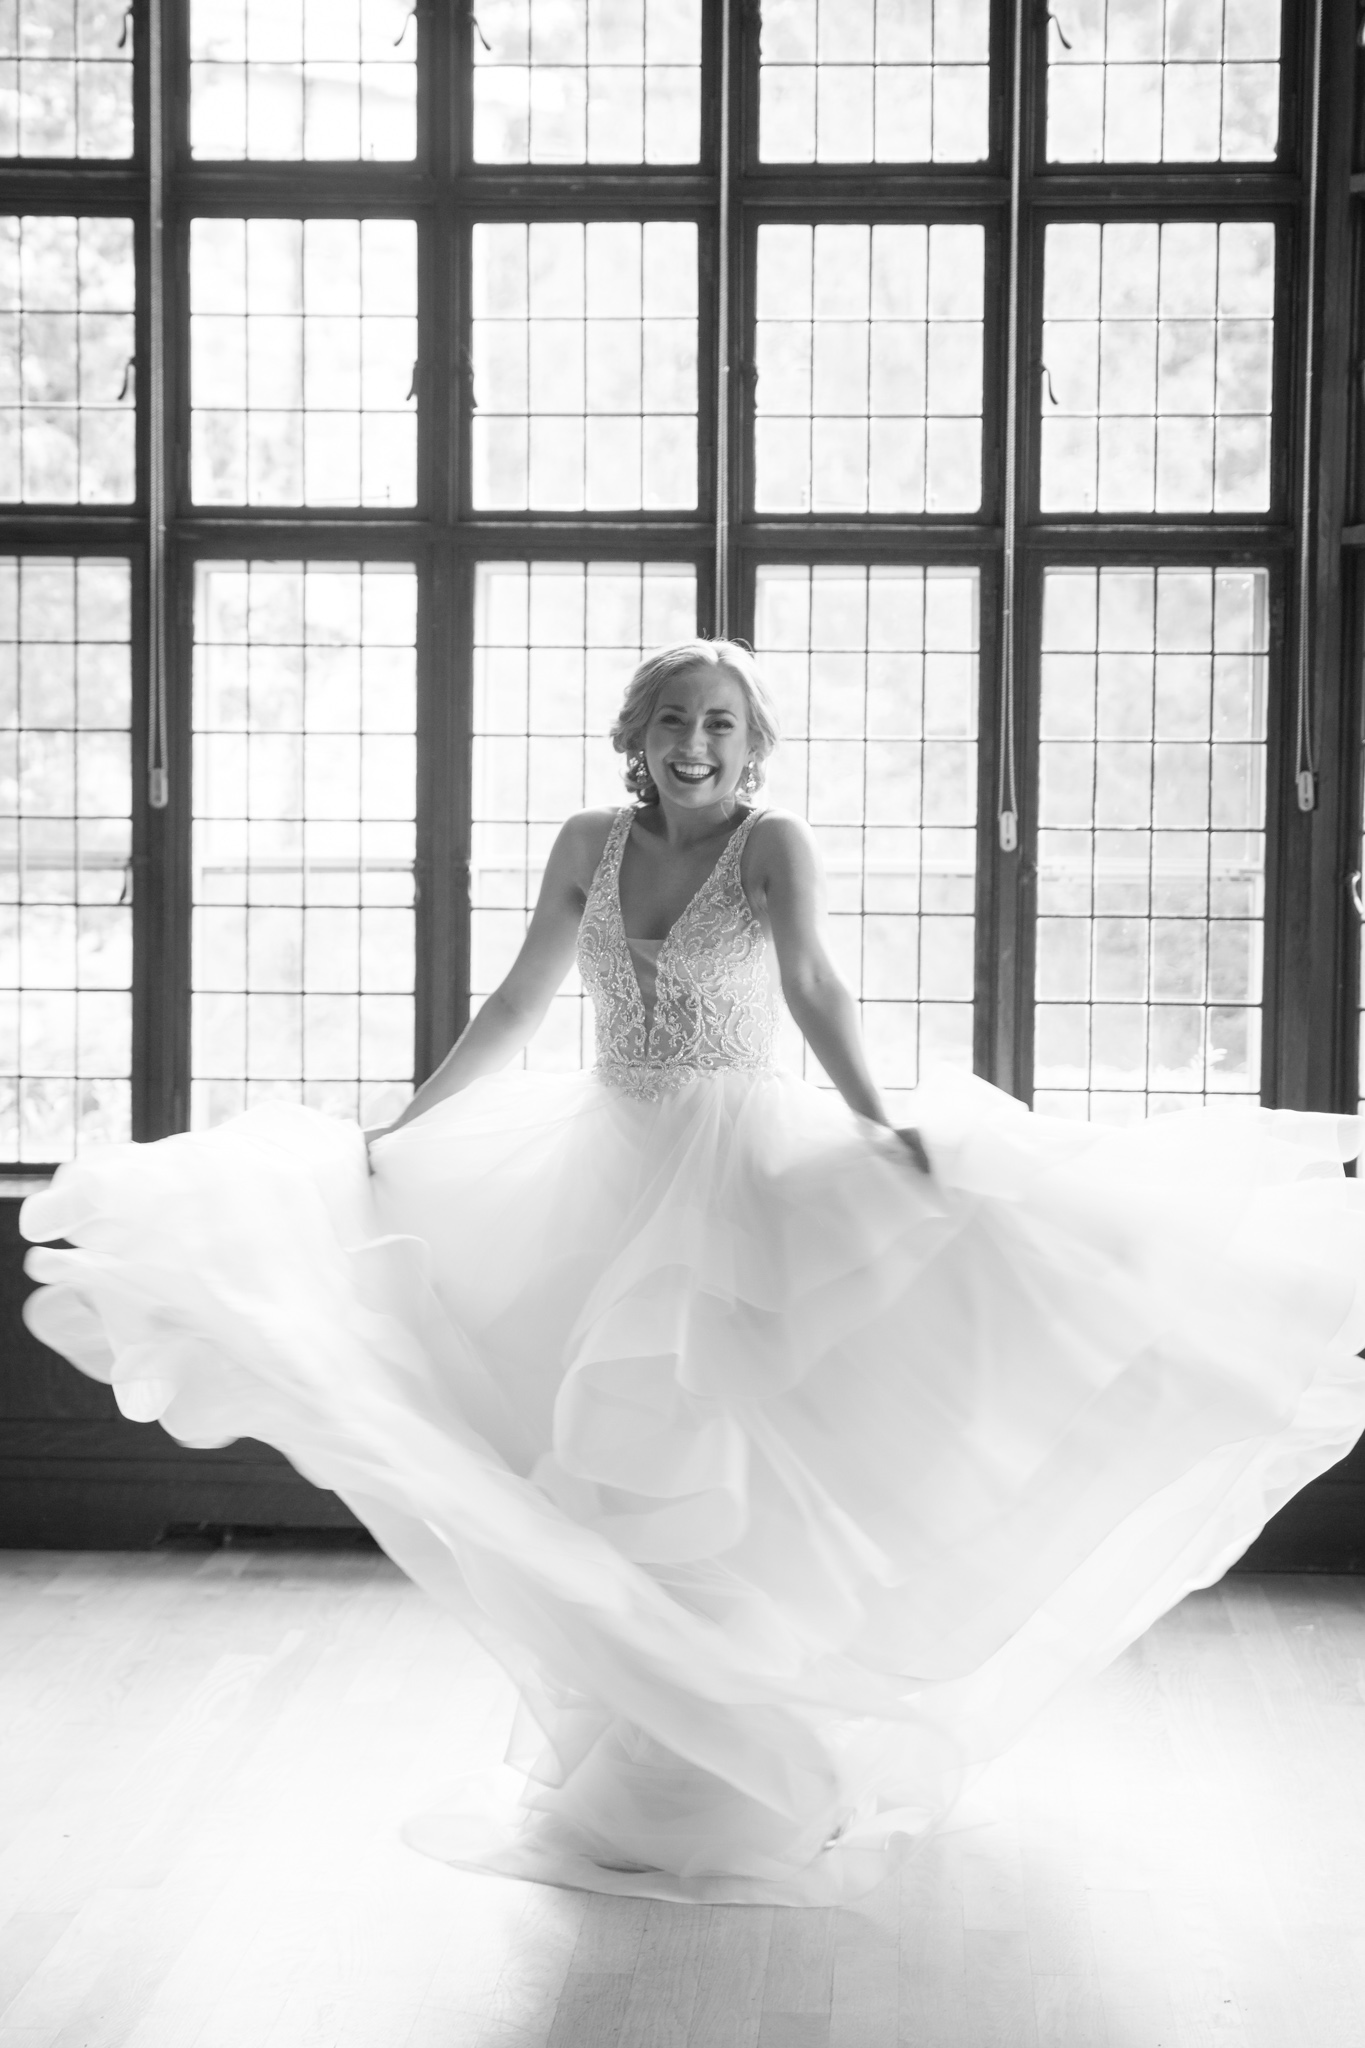 Fun loving bride in wedding dress twirling